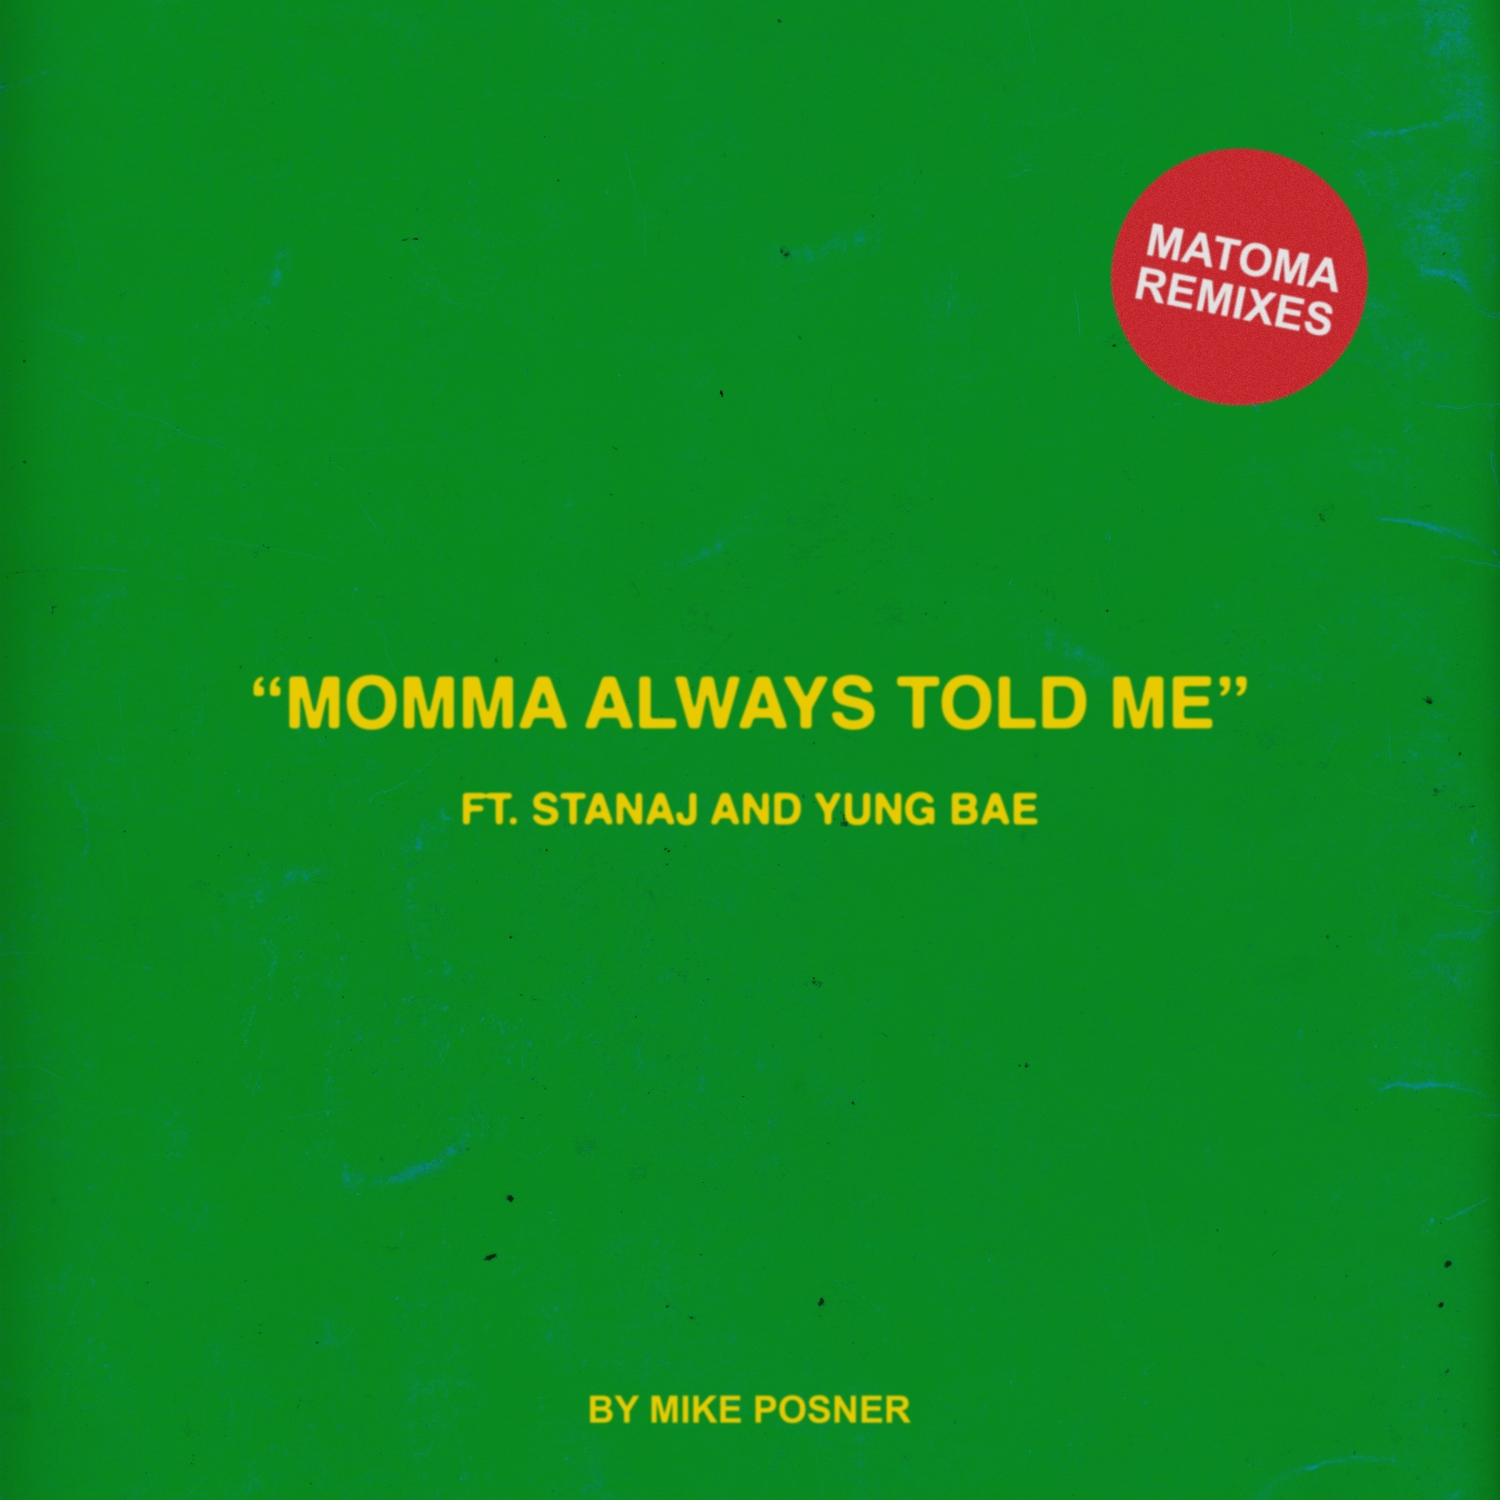 Mike Posner - Momma Always Told Me (feat. Stanaj and Yung Bae) (Matoma Remixes)